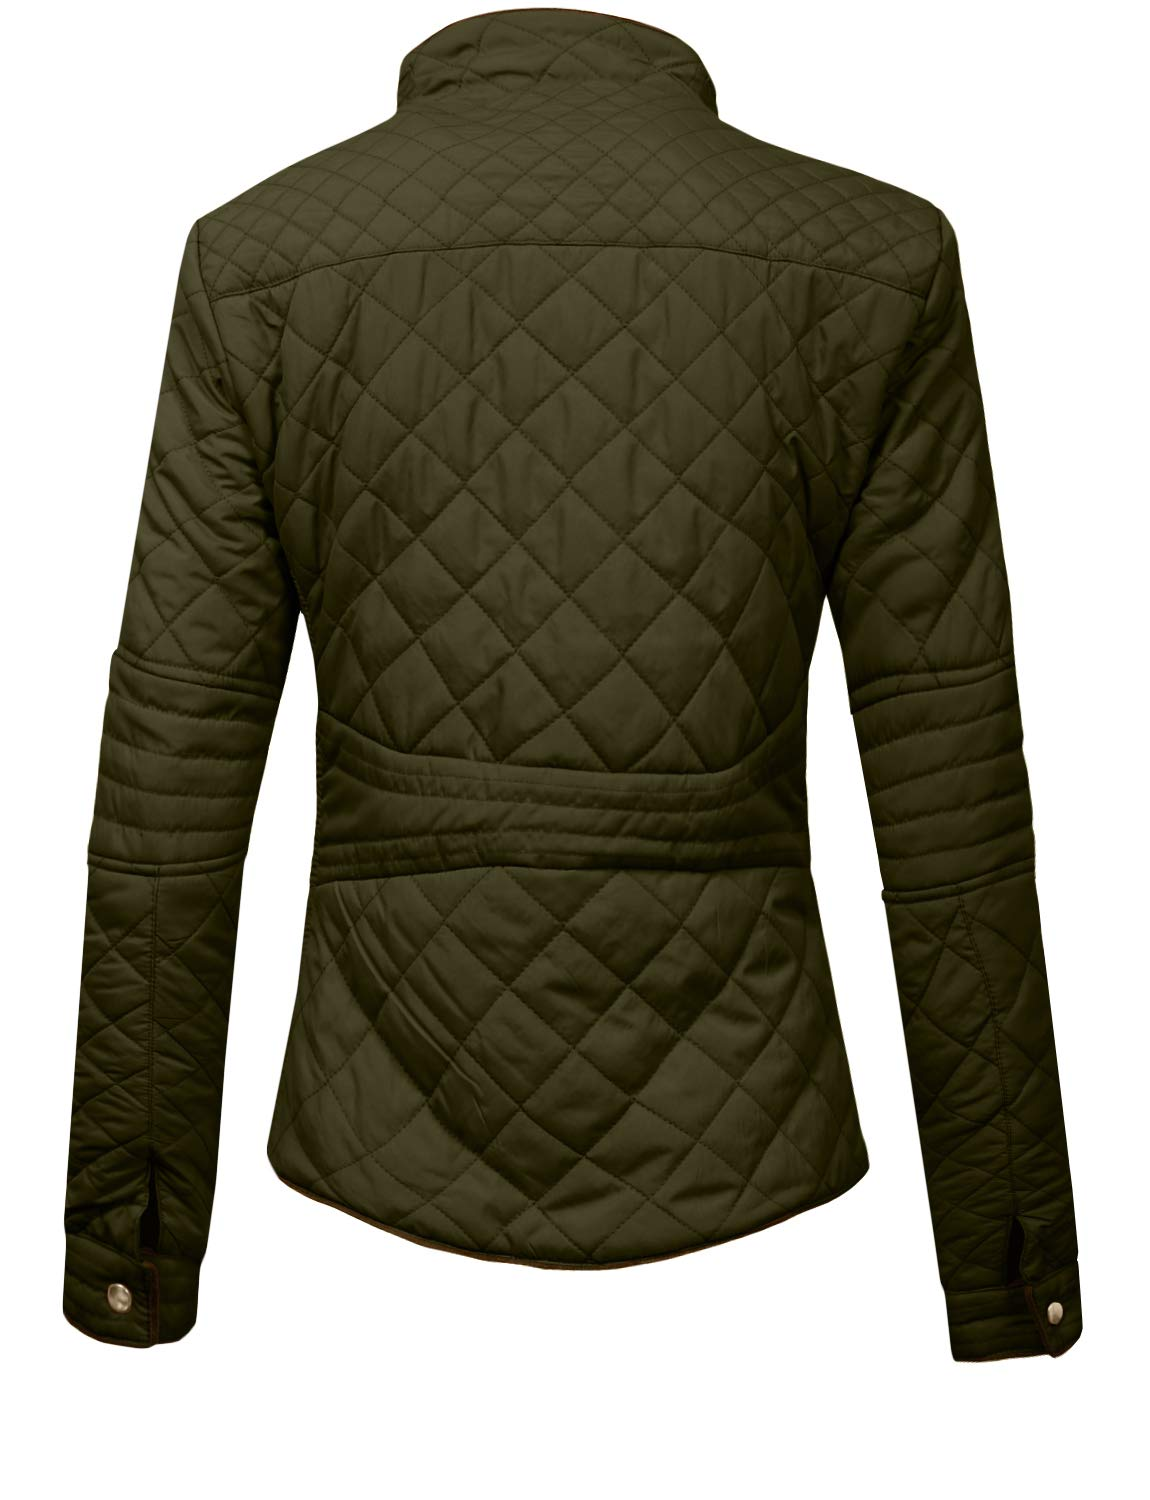 J. LOVNY Womens Lightweight Quilted Warm Zip Jacket/Vest with Pocket Details by J. LOVNY (Image #3)